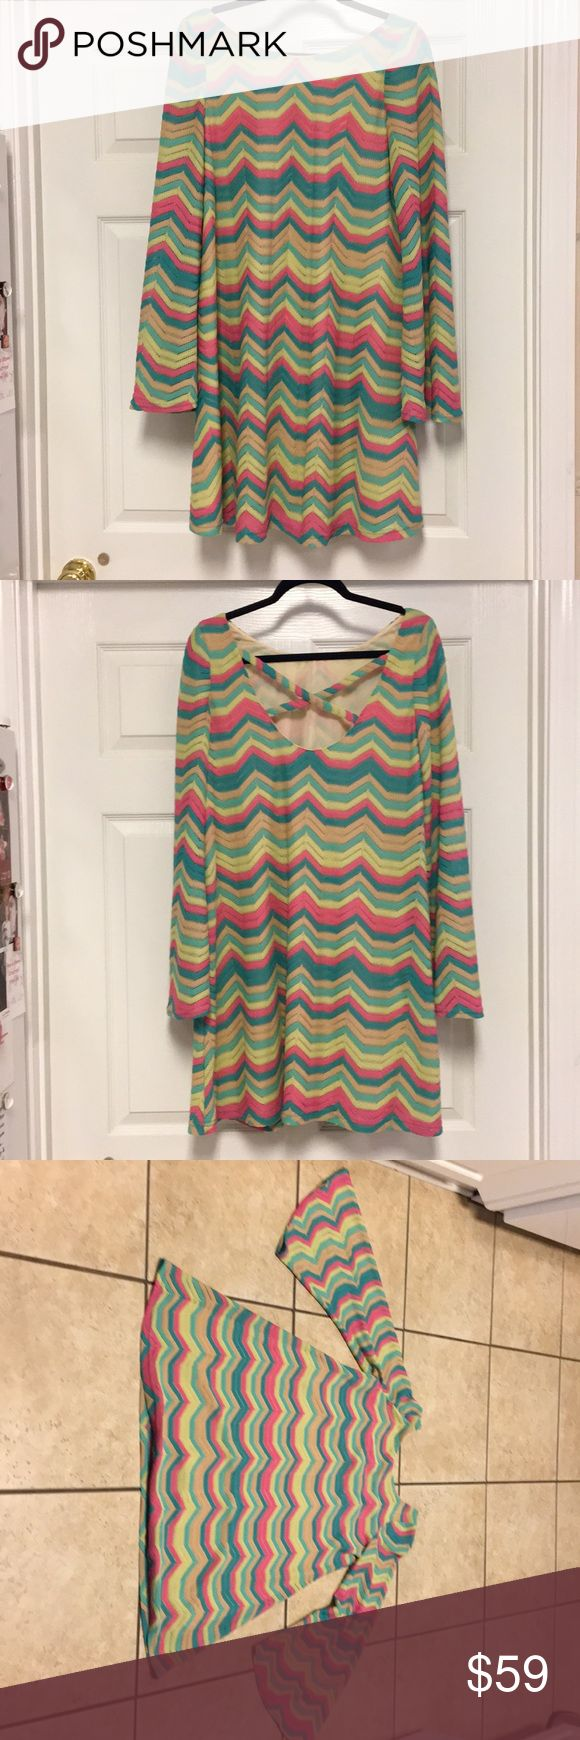 Judith March chevron dress These colors include hot pink, yellow, teal and tan. So colorful and cheerful and beautiful! The bell sleeves give it a sweeping affect and you will love this for your wardrobe! Judith March Dresses